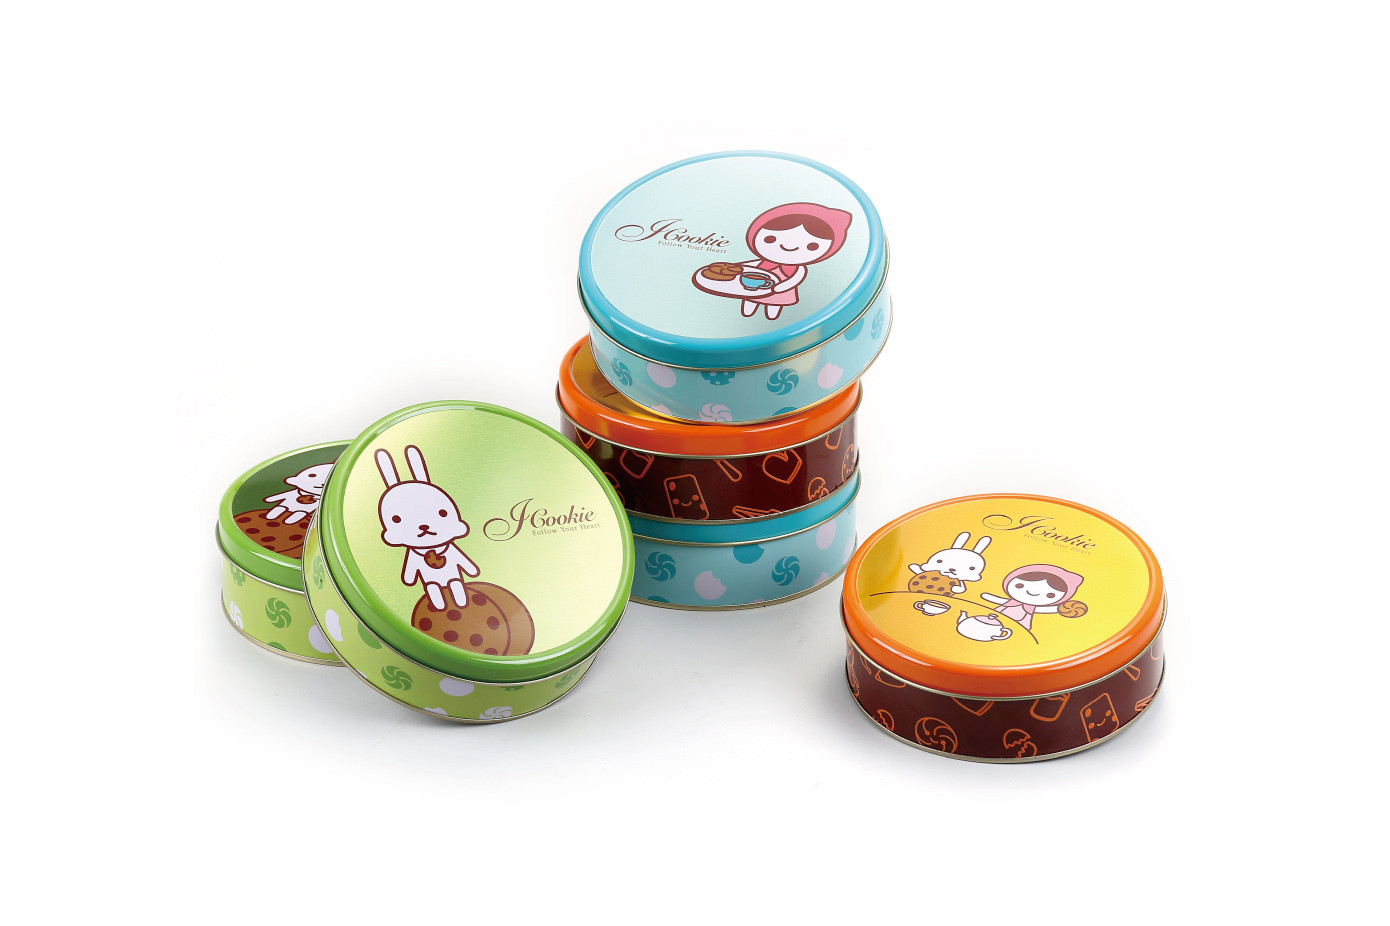 ICookie Mascot Design & Packaging 2